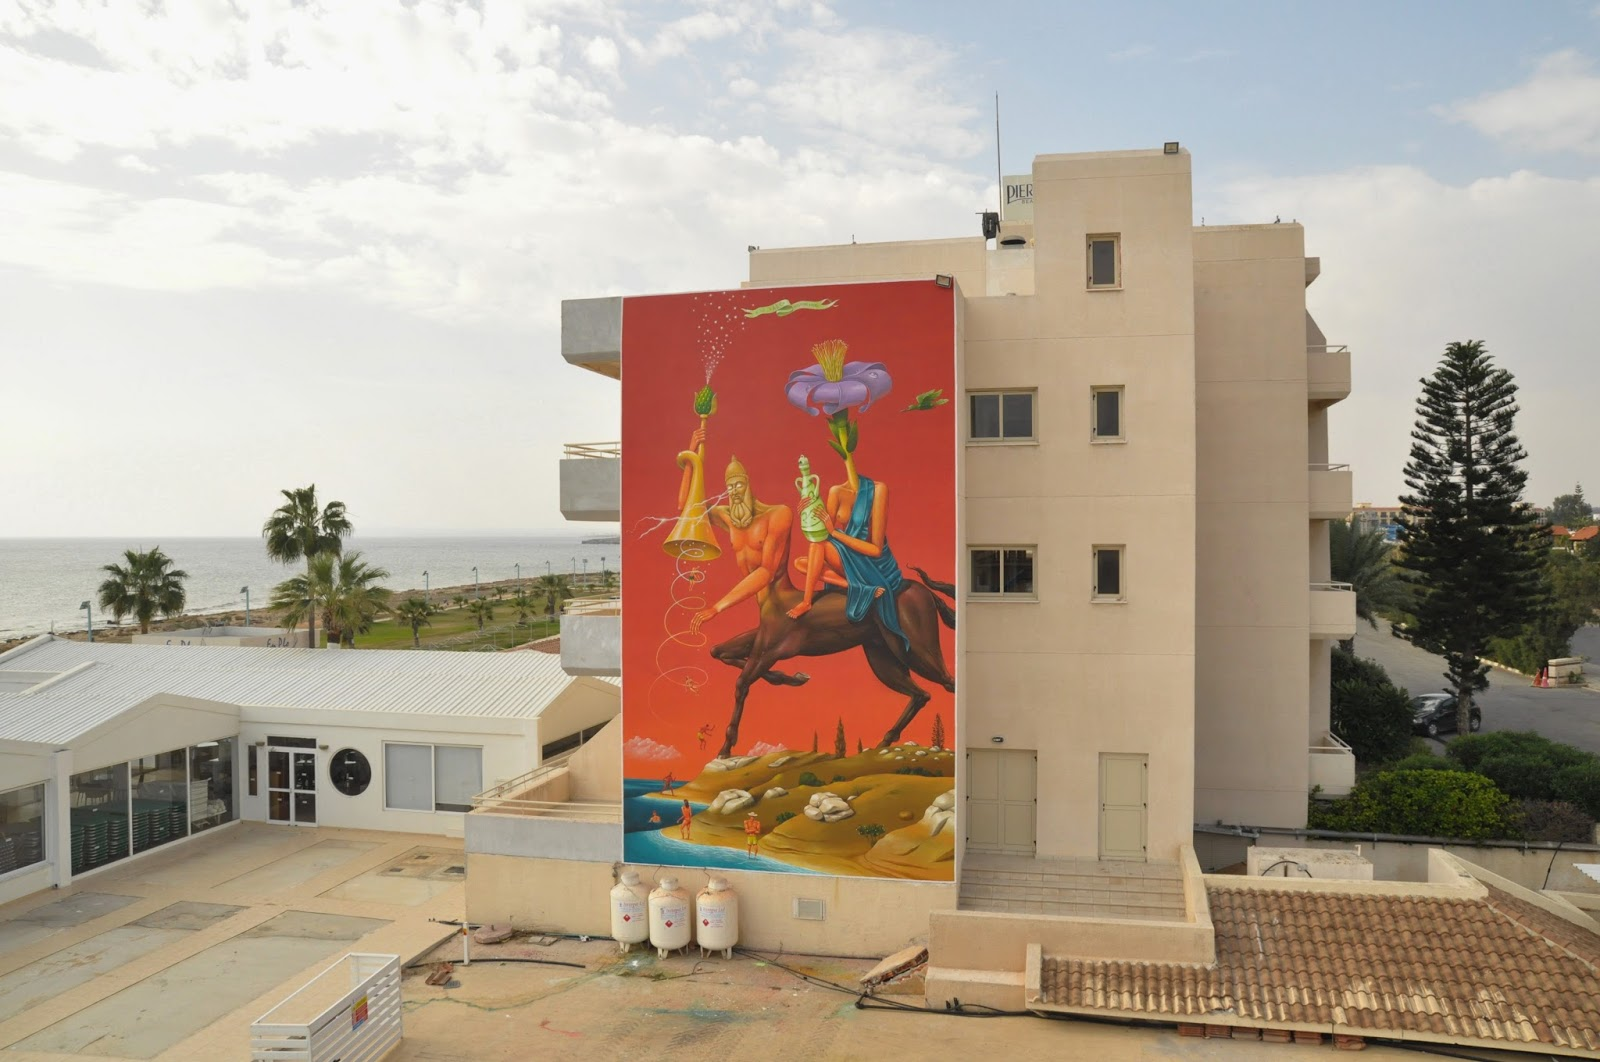 interesni-kazki-new-mural-in-ayia-napa-cyprus-14